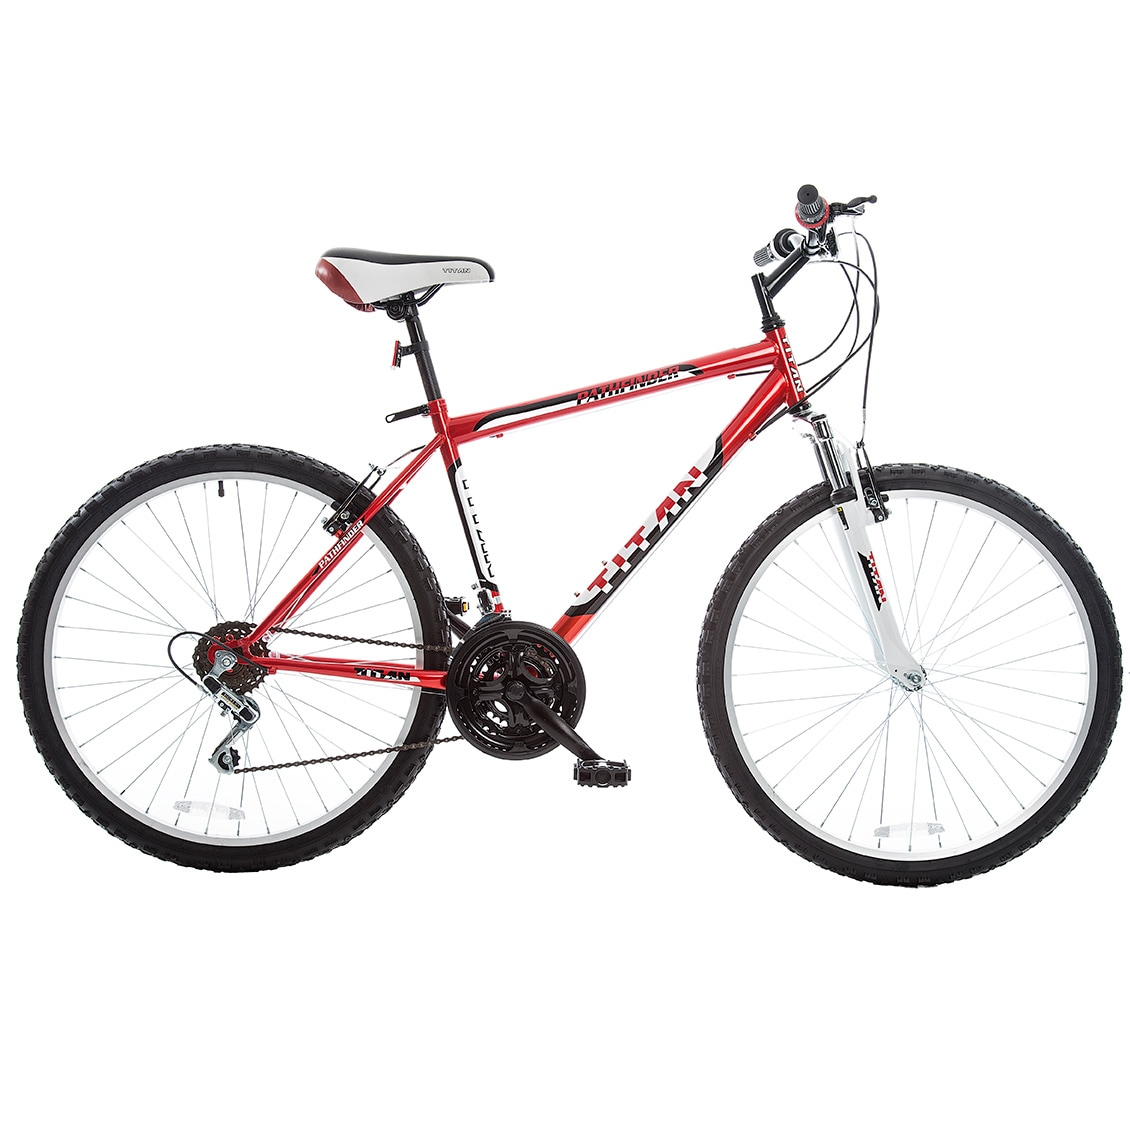 Titan Pathfinder Men's All-terrain Mountain Bike at Sears.com